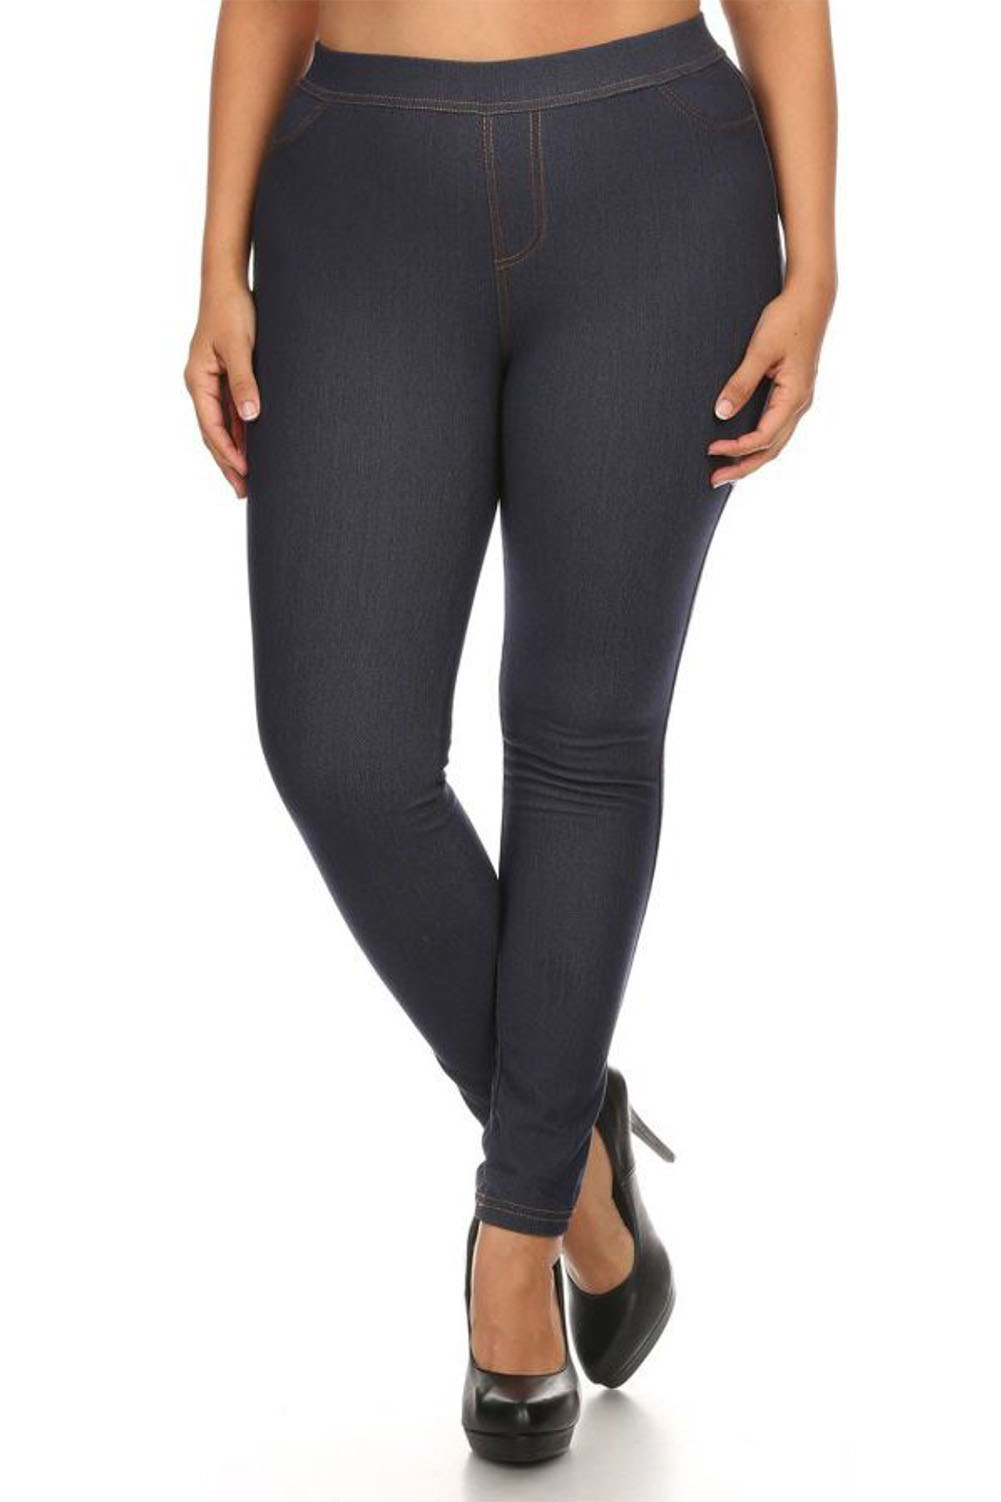 Jean Leggings for Women. The Legging Jean from Abercrombie & Fitch is skinny pant perfection. Like your favorite jeans and our best leggings combined, our jean leggings for women have an ultra slim fit, tapered ankle, and light, featherweight feel.